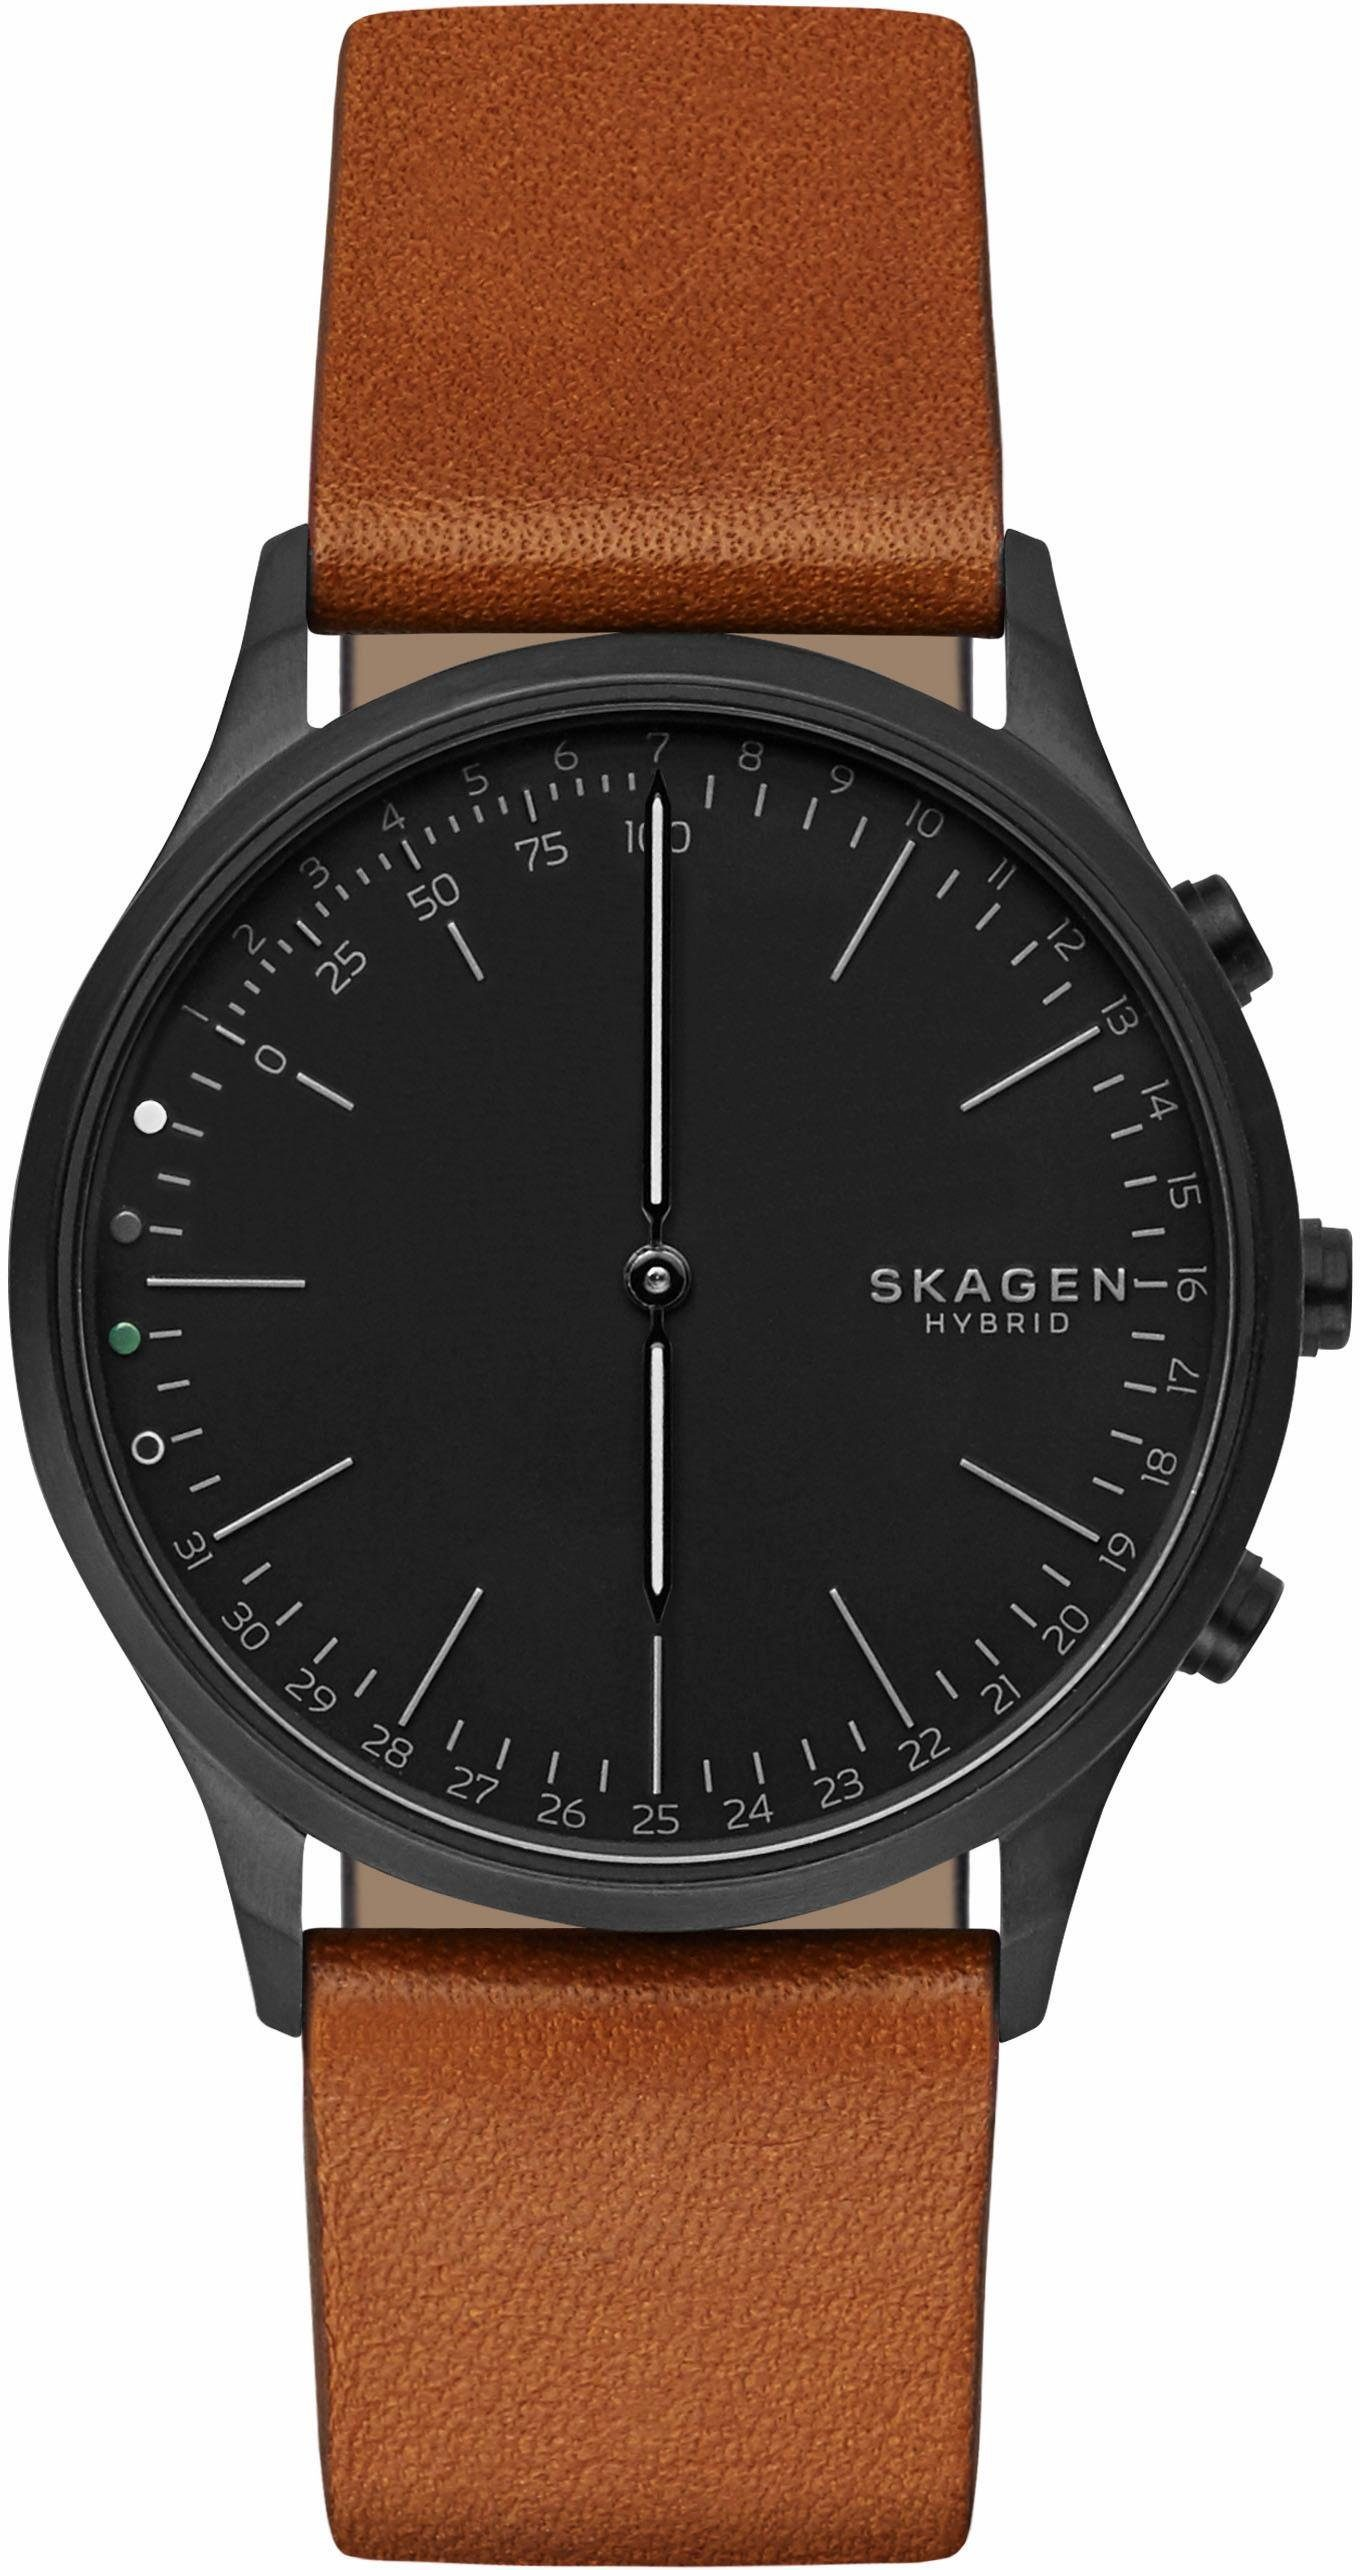 SKAGEN CONNECTED JORN, SKT1202 Smartwatch (Android Wear)